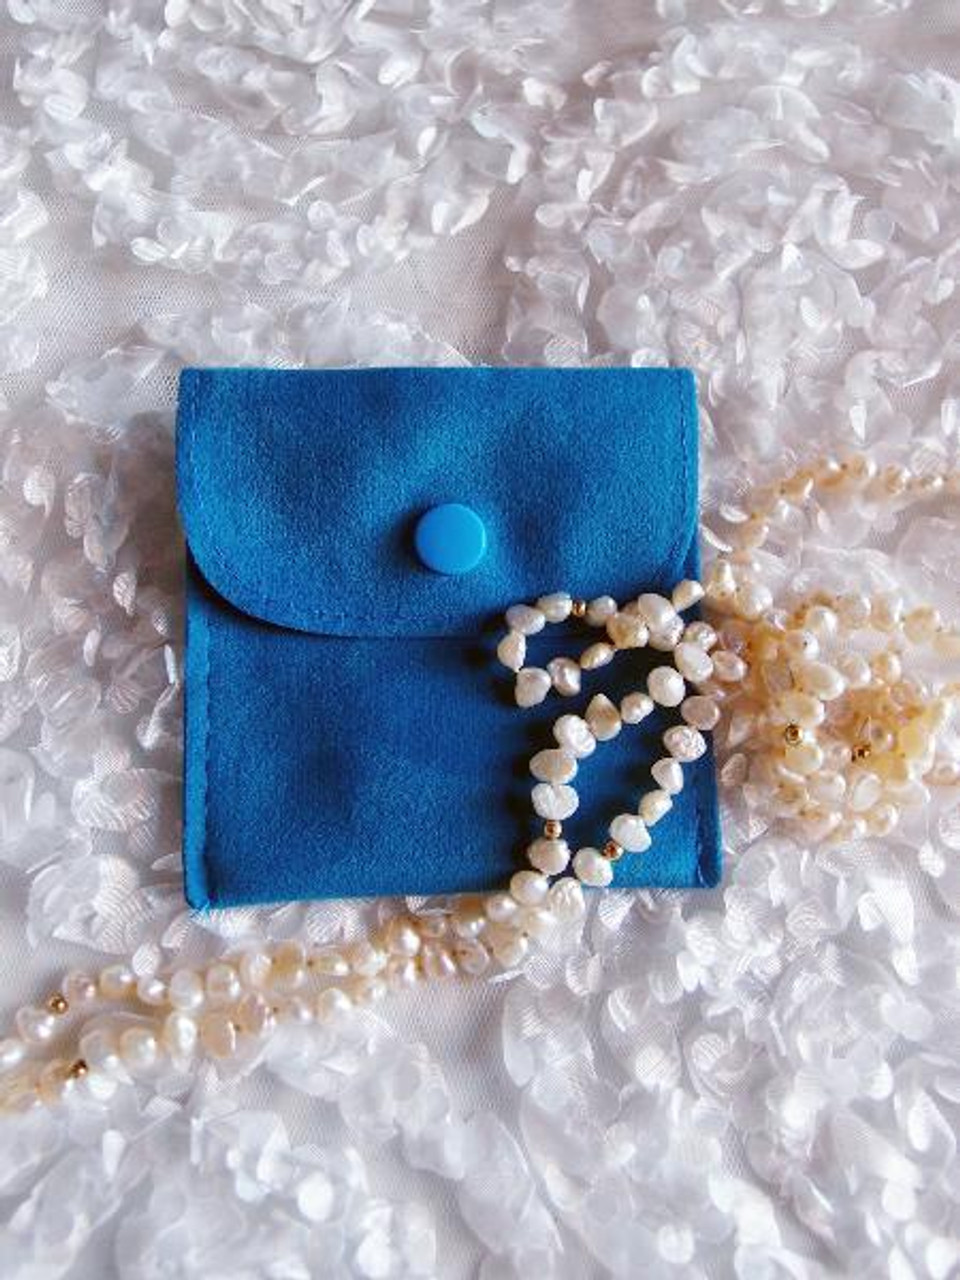 Peacock Blue Velvet Jewelry Pouch with Snap Fastener 3 x 3 inches J134-85   Packaging Decor